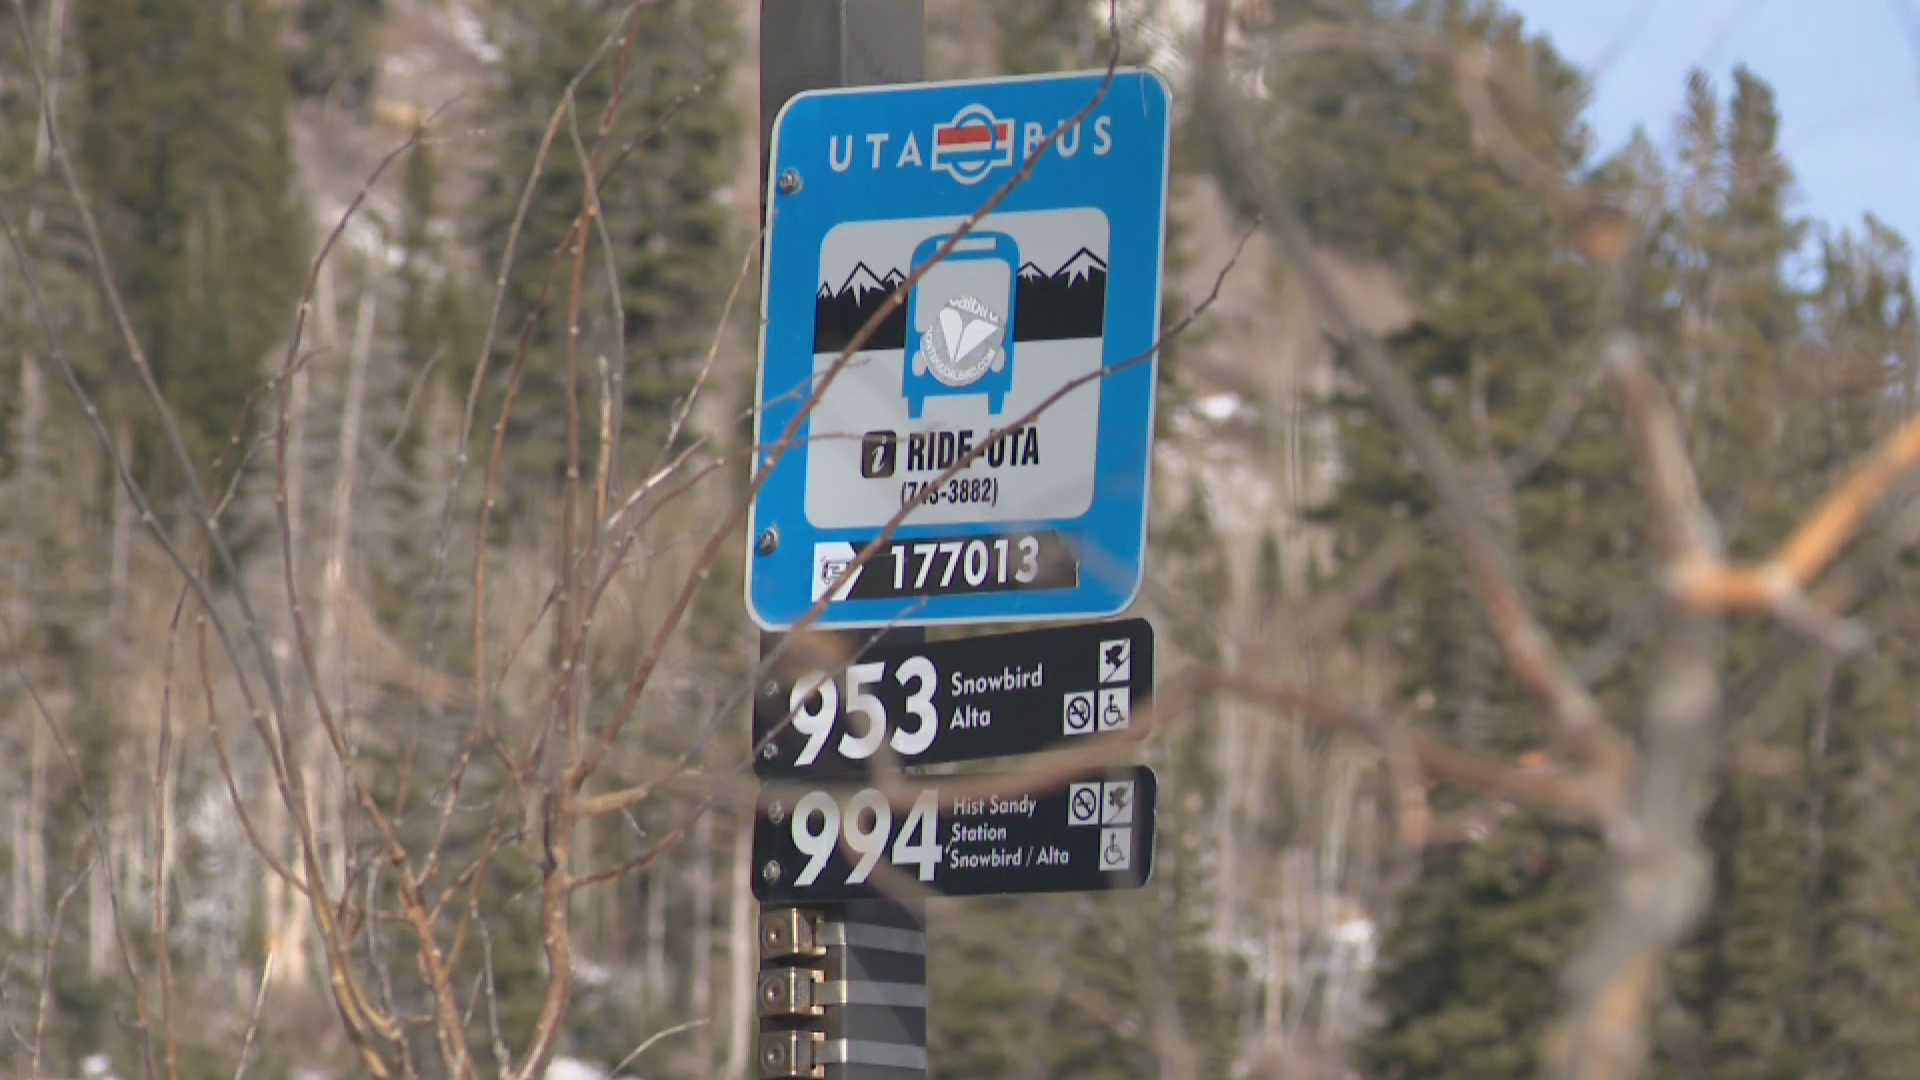 Ski slopes are opening up for the season, but the mountains have had to make a few changes due to COVID-19. (Photo: KUTV)